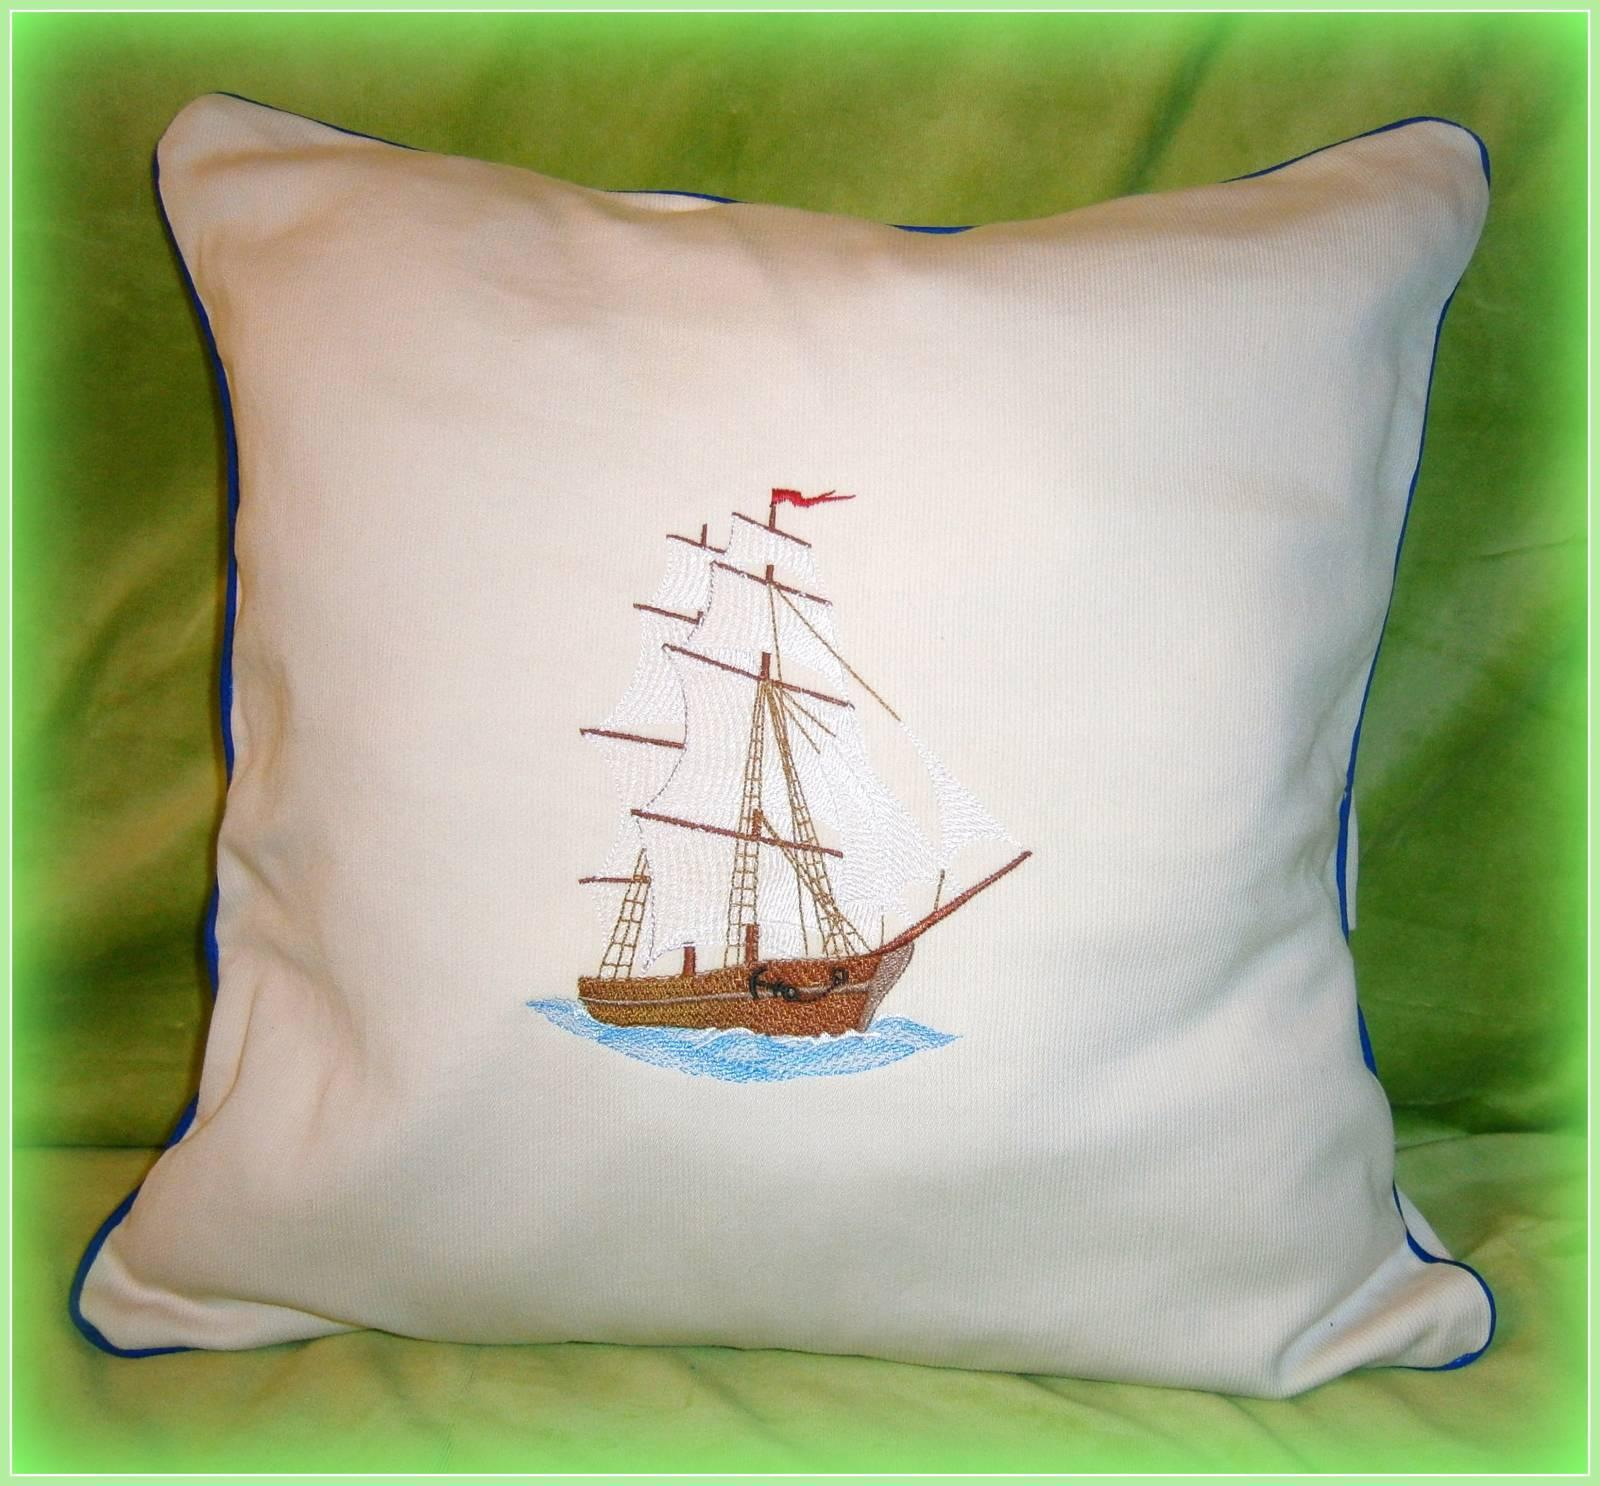 Decorative pillow with sailboat machine embroidery design